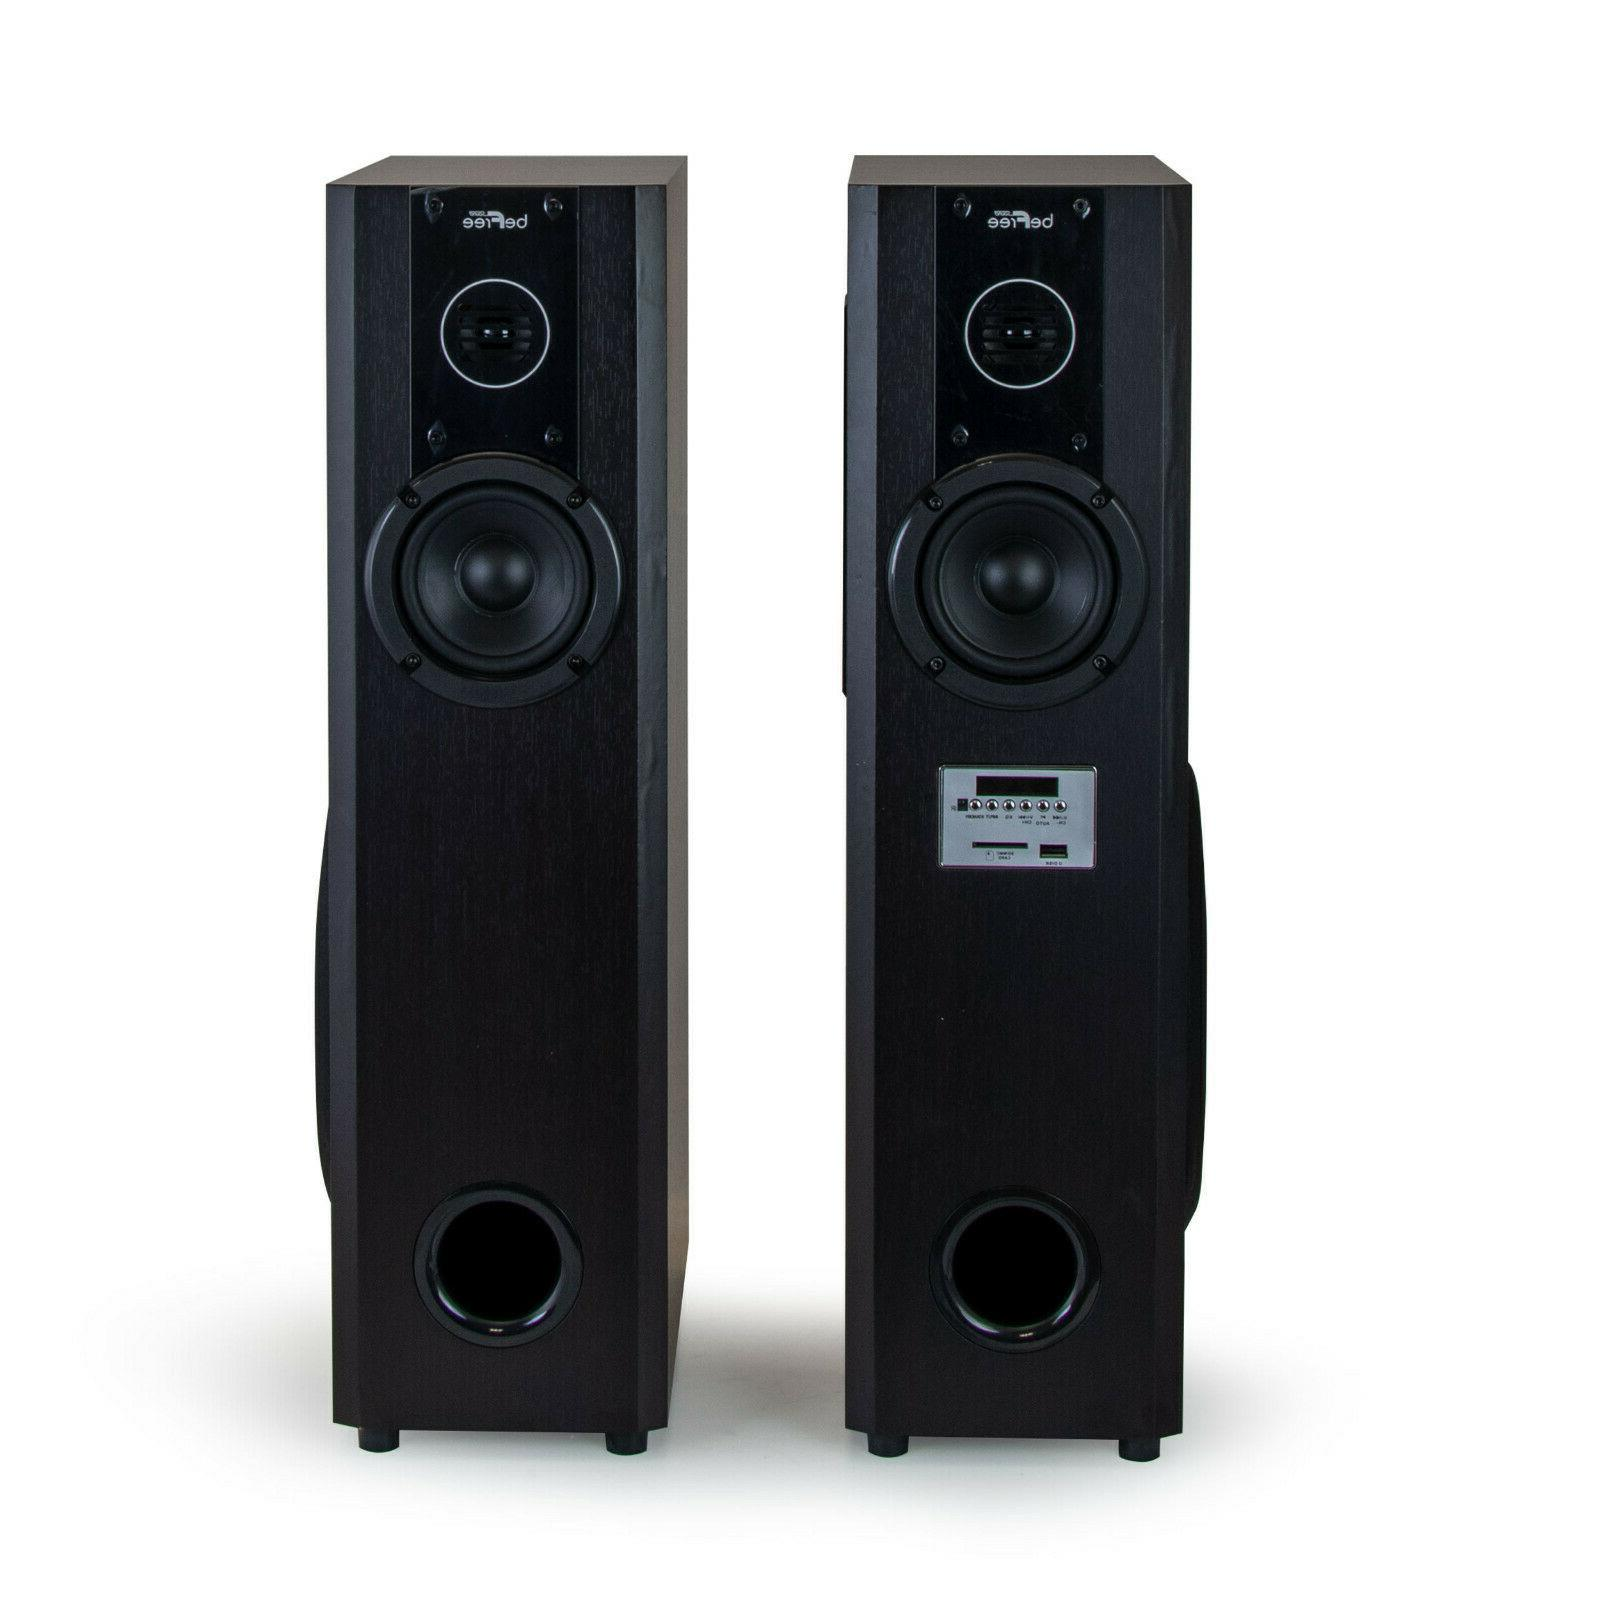 SPEAKERS MP3 SYSTEM